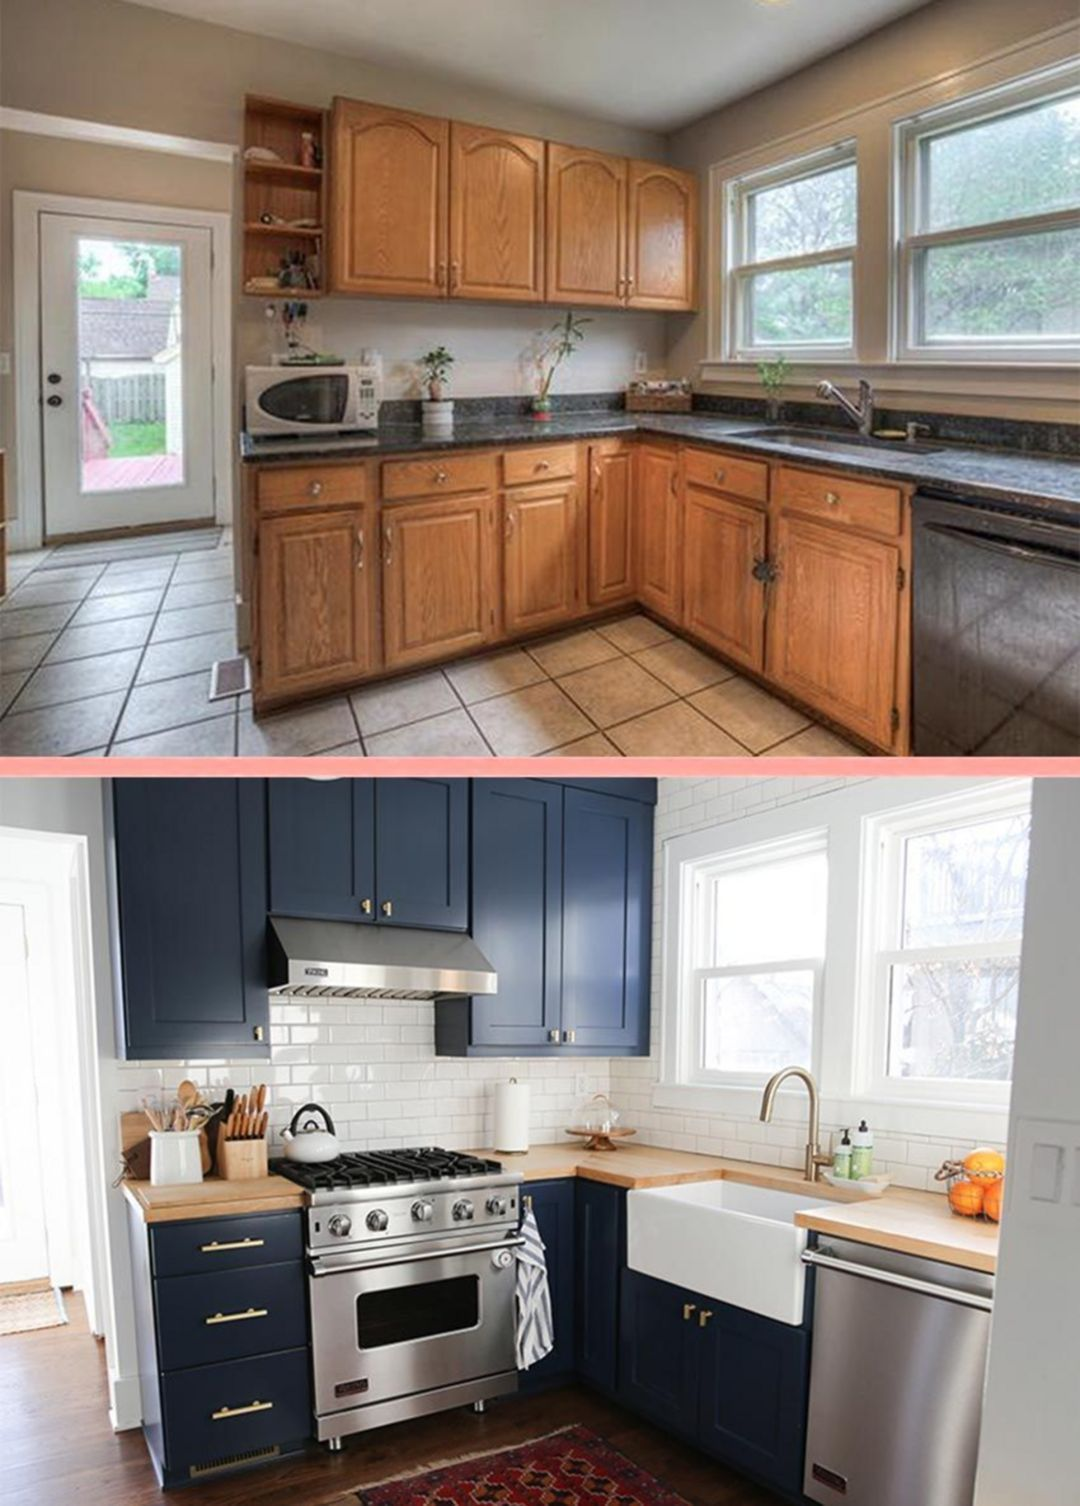 30 Best Kitchen Renovation Ideas With Before and After